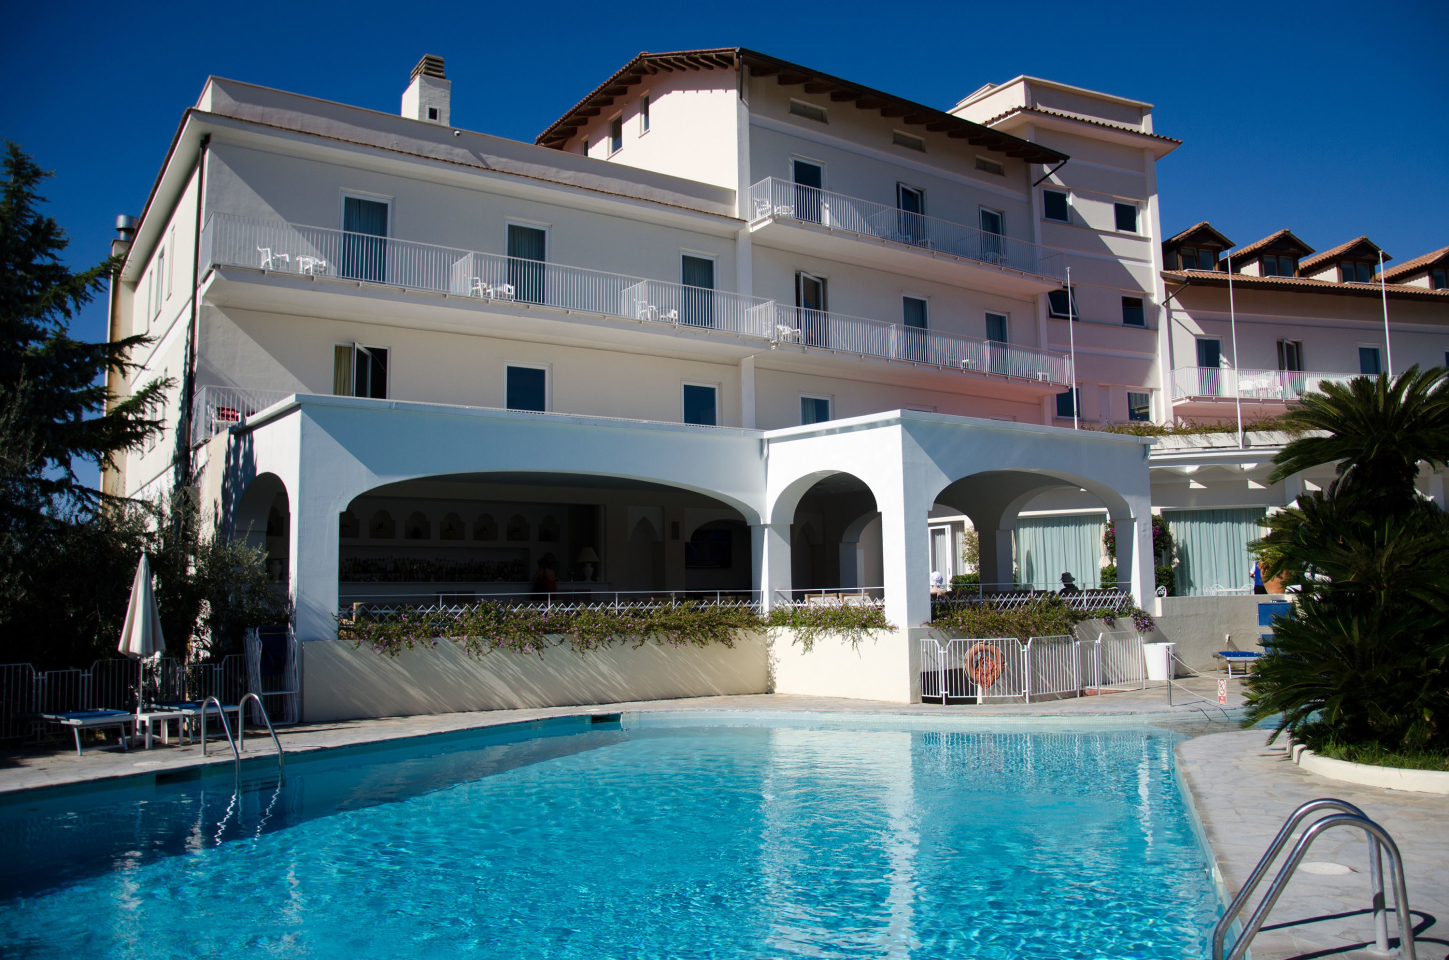 Hotel with swimming pool sorrento - Hotel in sorrento italy with swimming pool ...